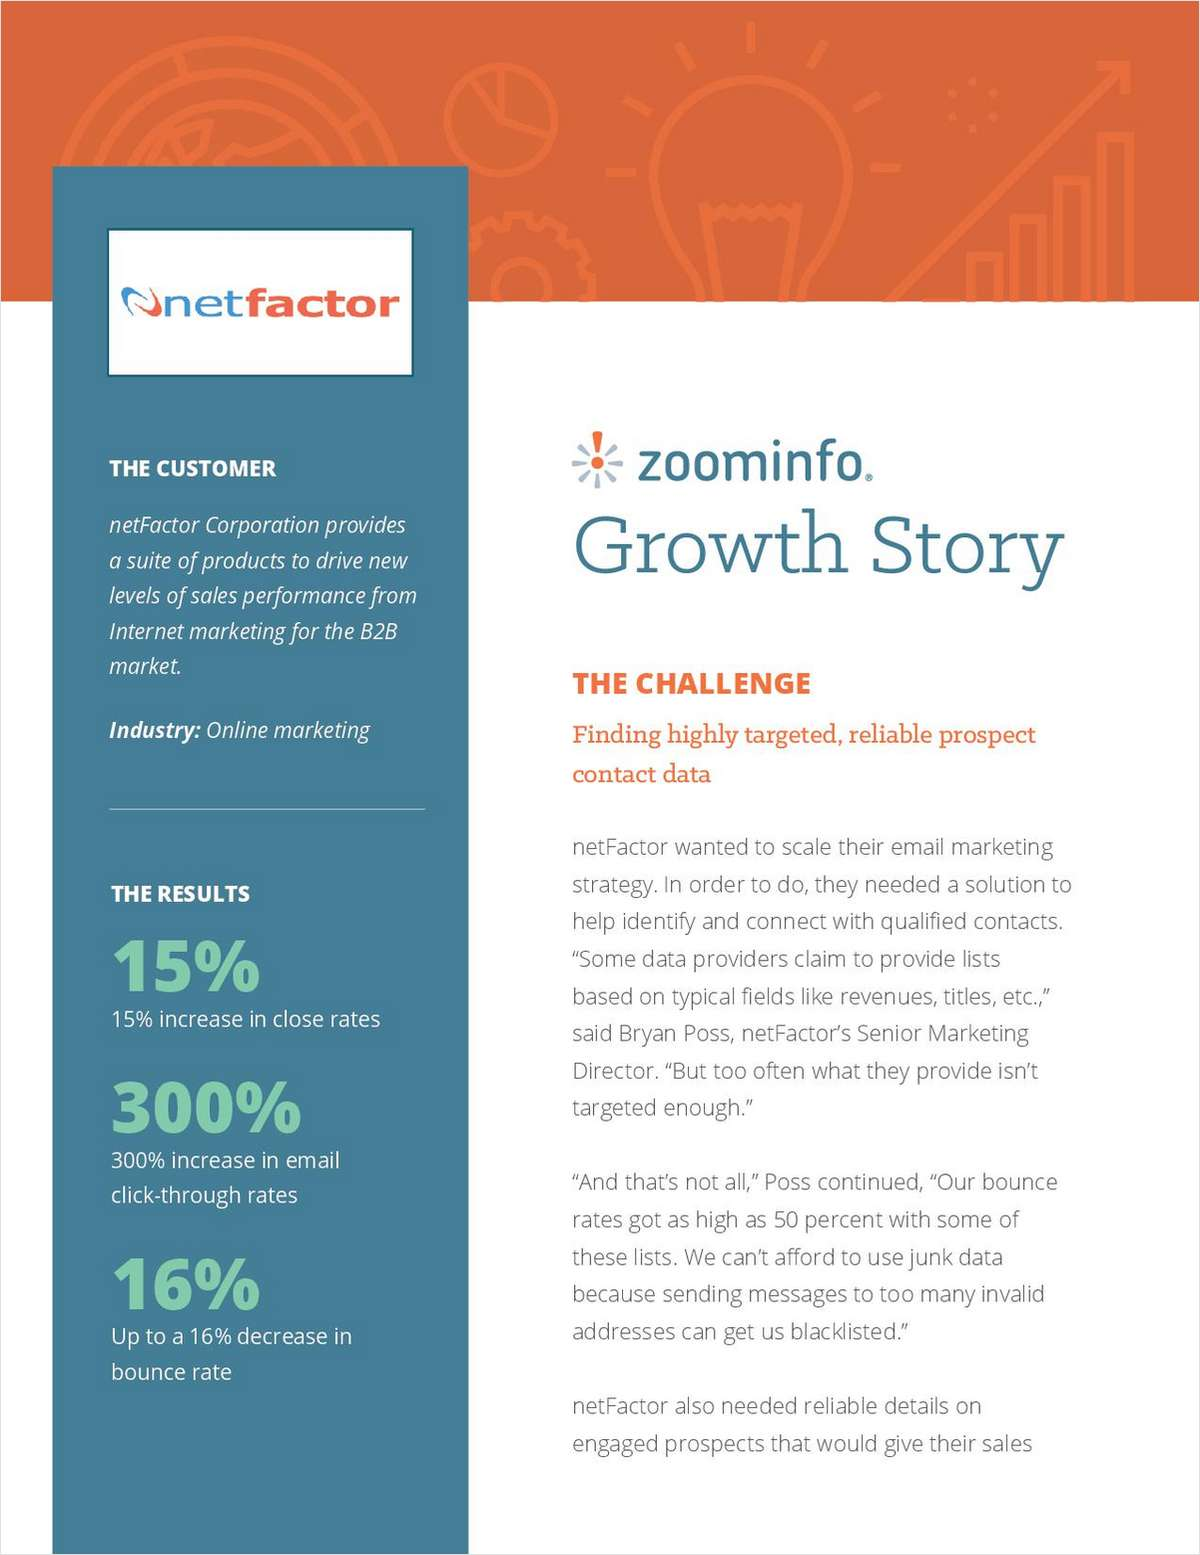 How netFactor Reduced Bounce Rates & Improved Email Marketing Engagement by 300%